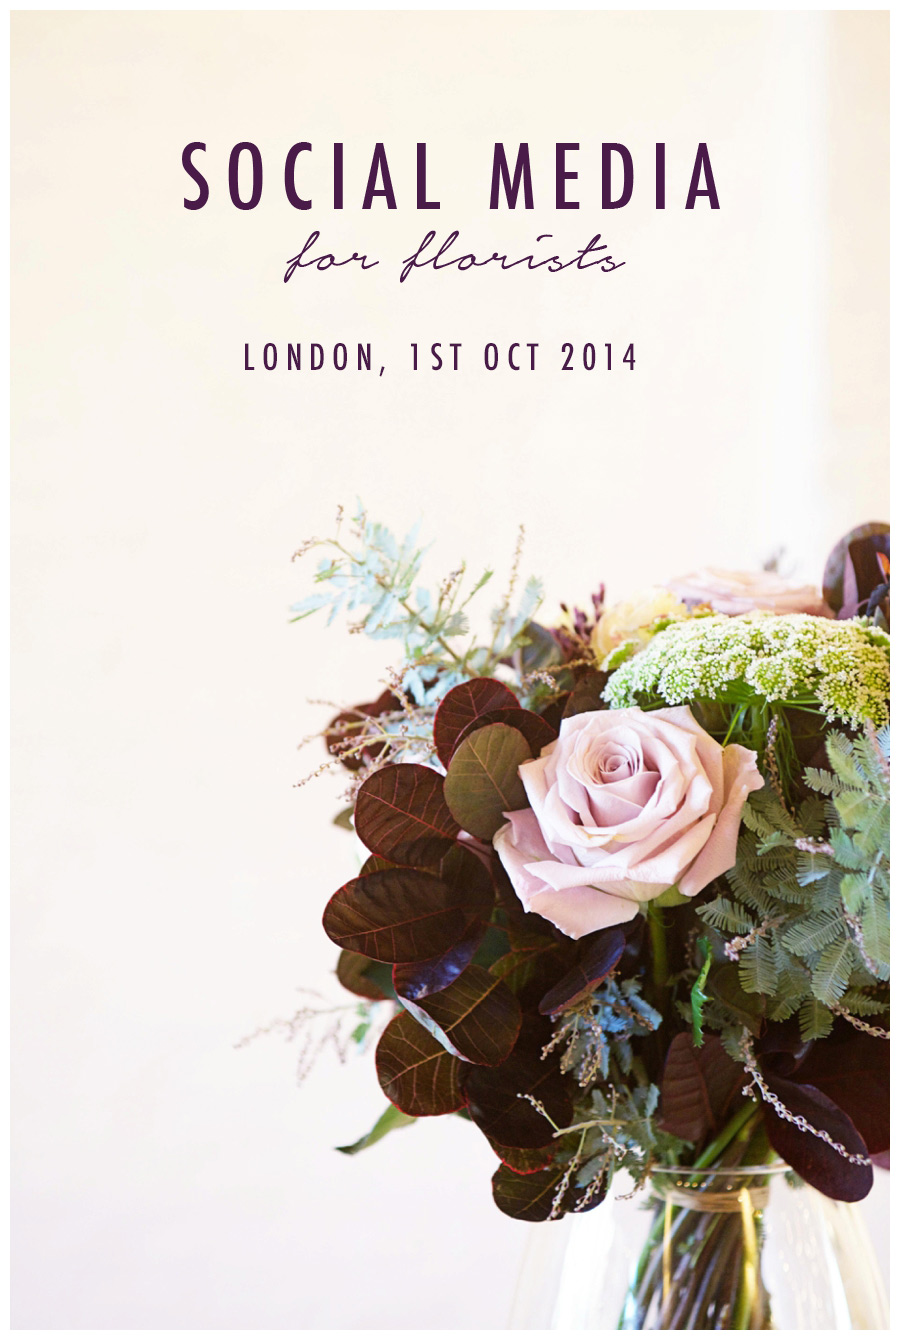 social-media-for-florists-flowerona-fiona-humberstone-36